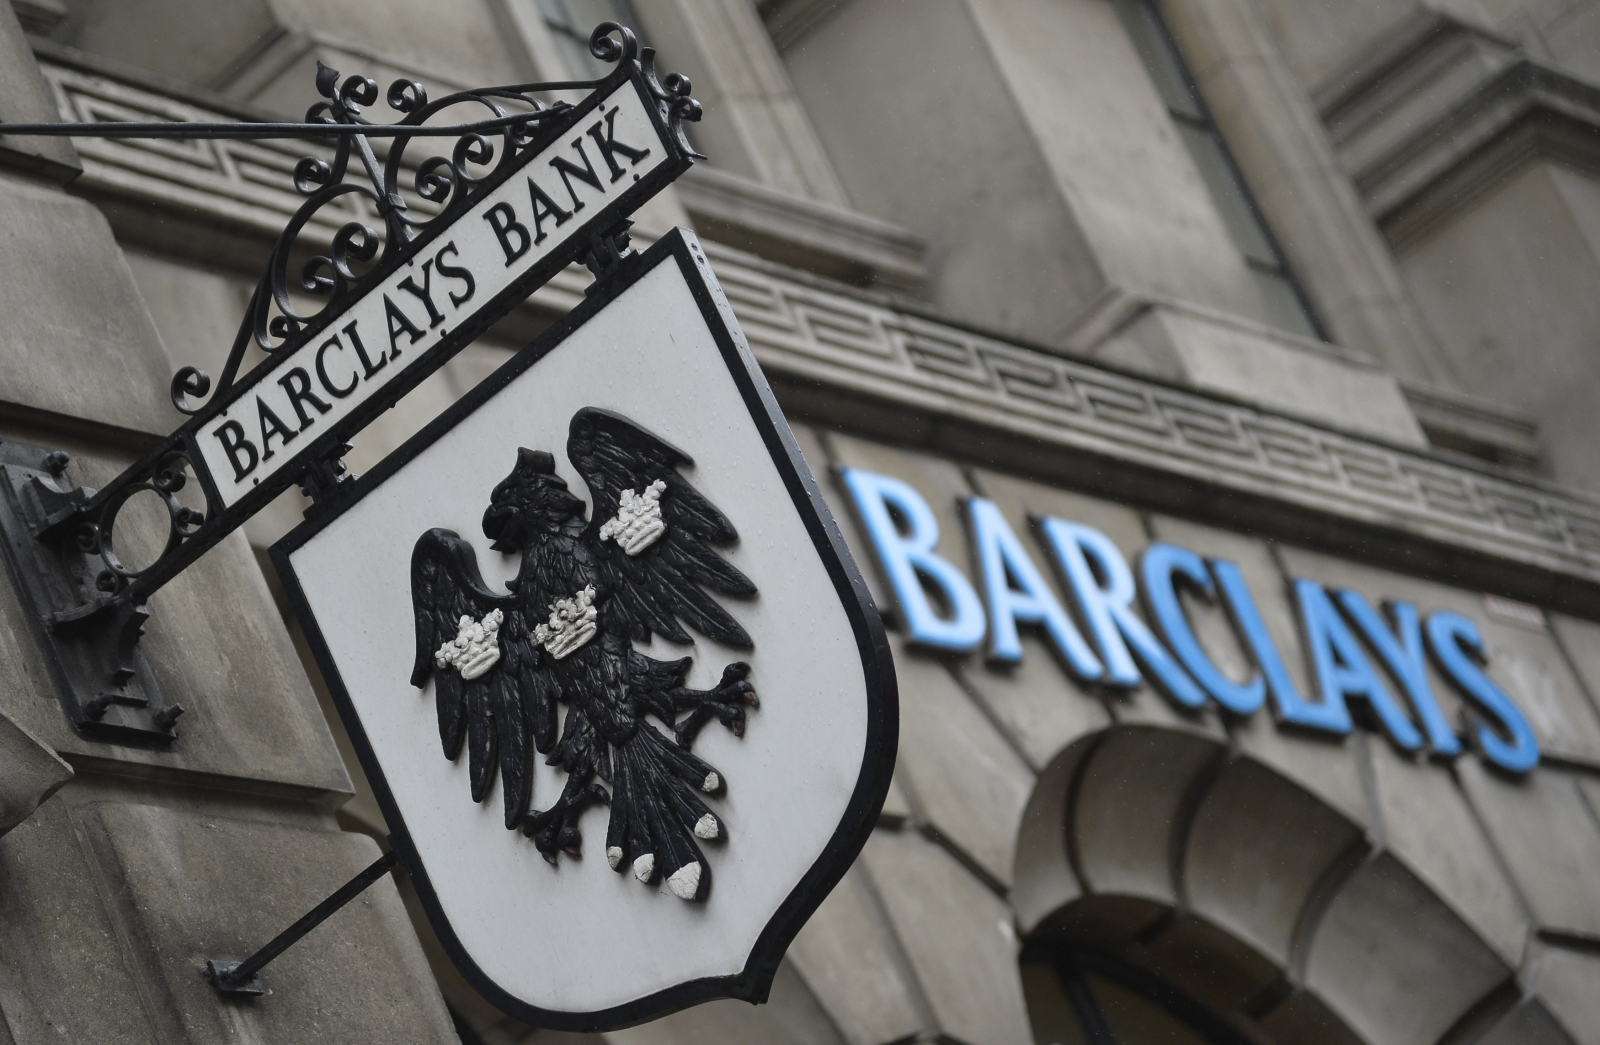 Barclays to Sell Part of Spanish Business to Caixabank for £633m